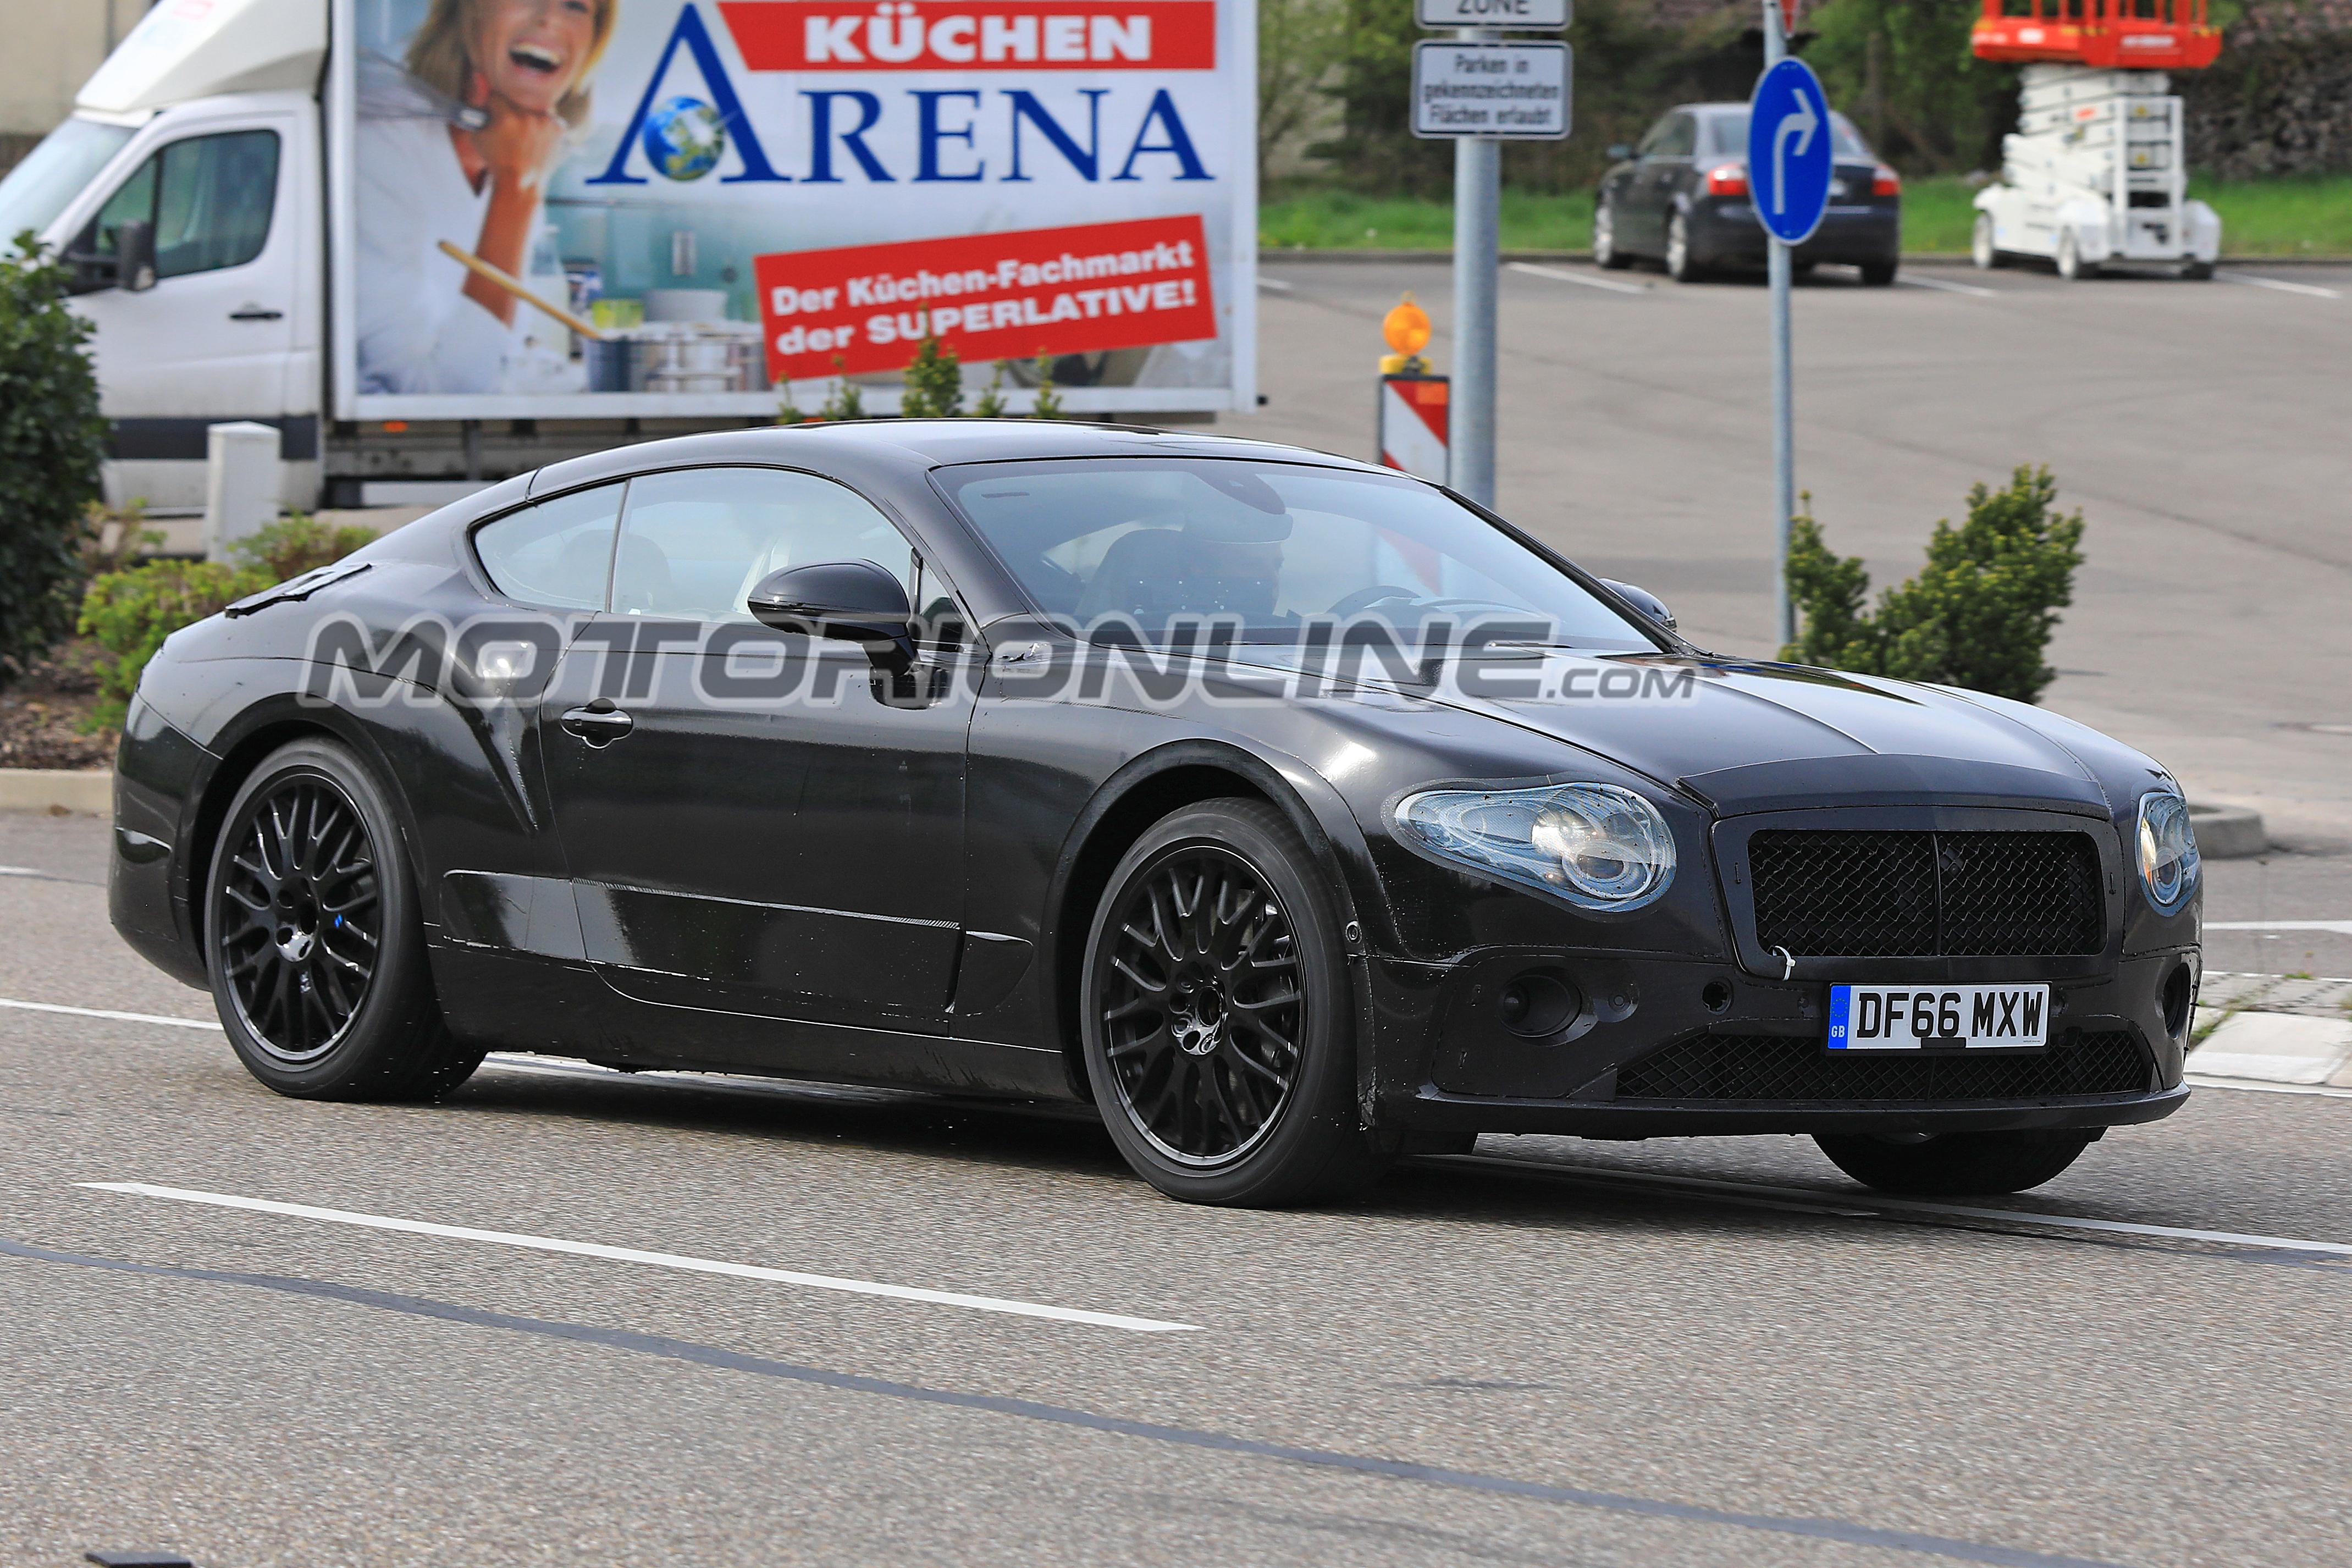 Bentley Continental GT MY 2018 foto spia 21 aprile 2018